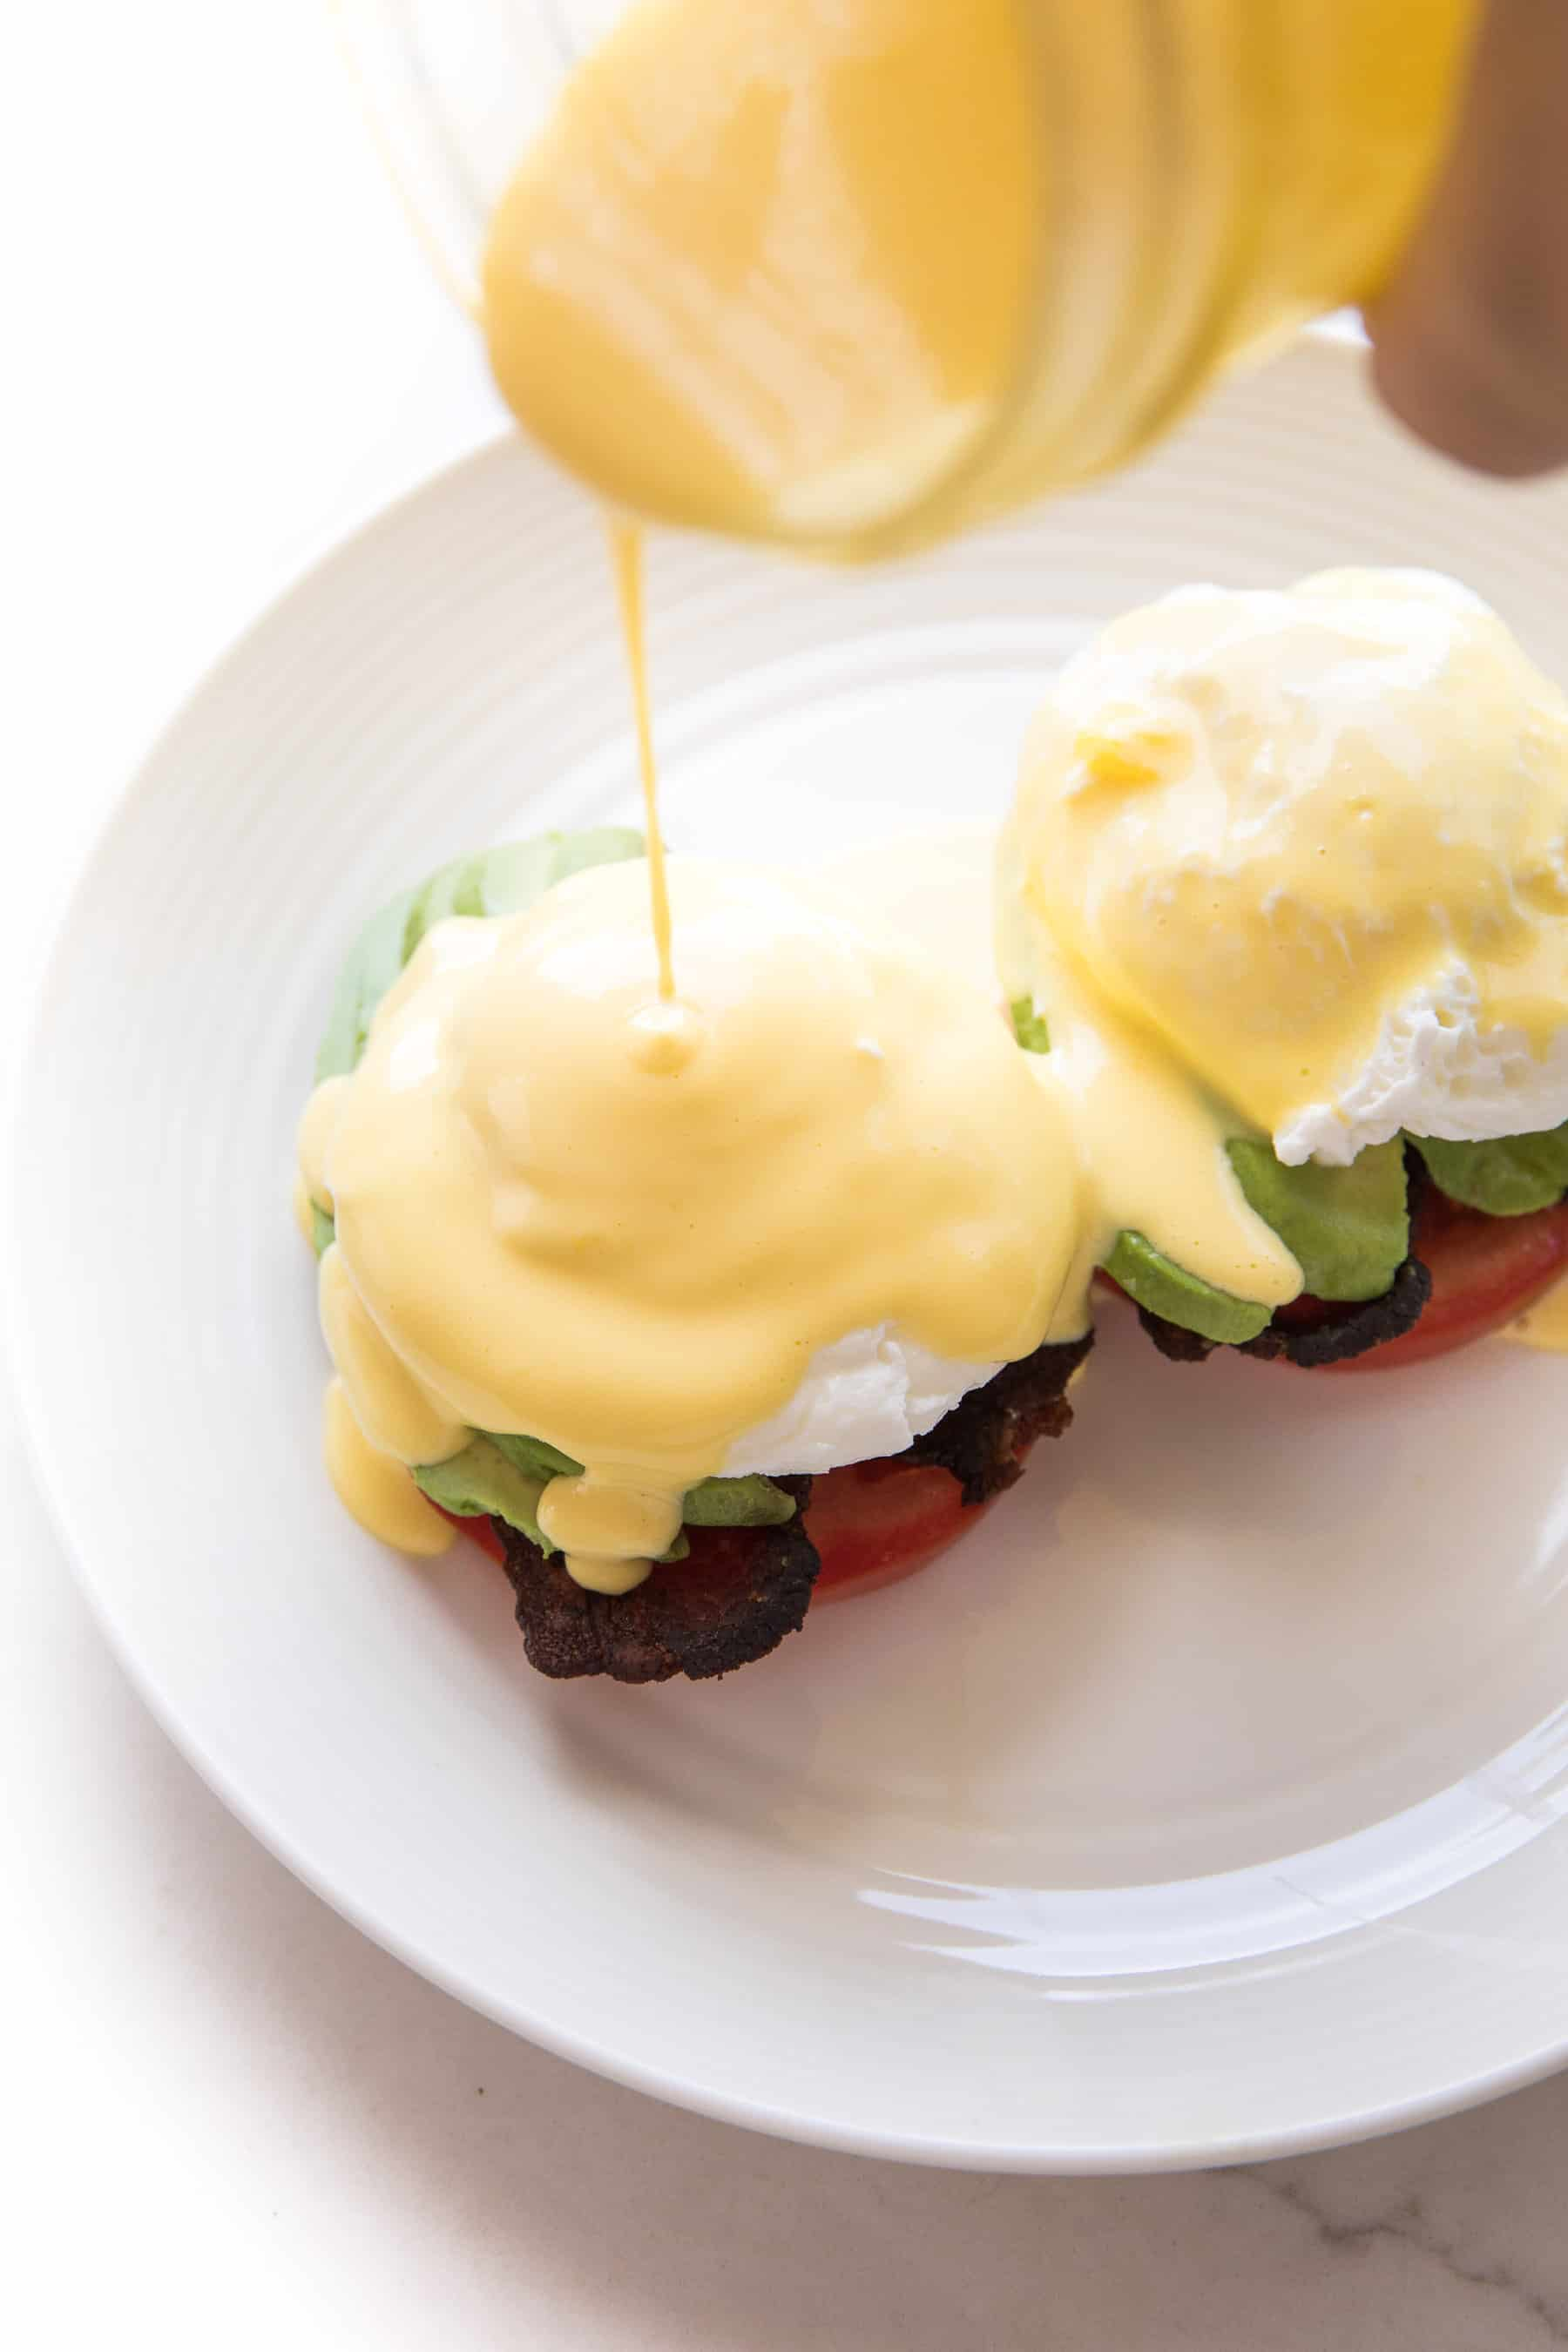 hollandaise sauce being poured over eggs benedict on a white plate